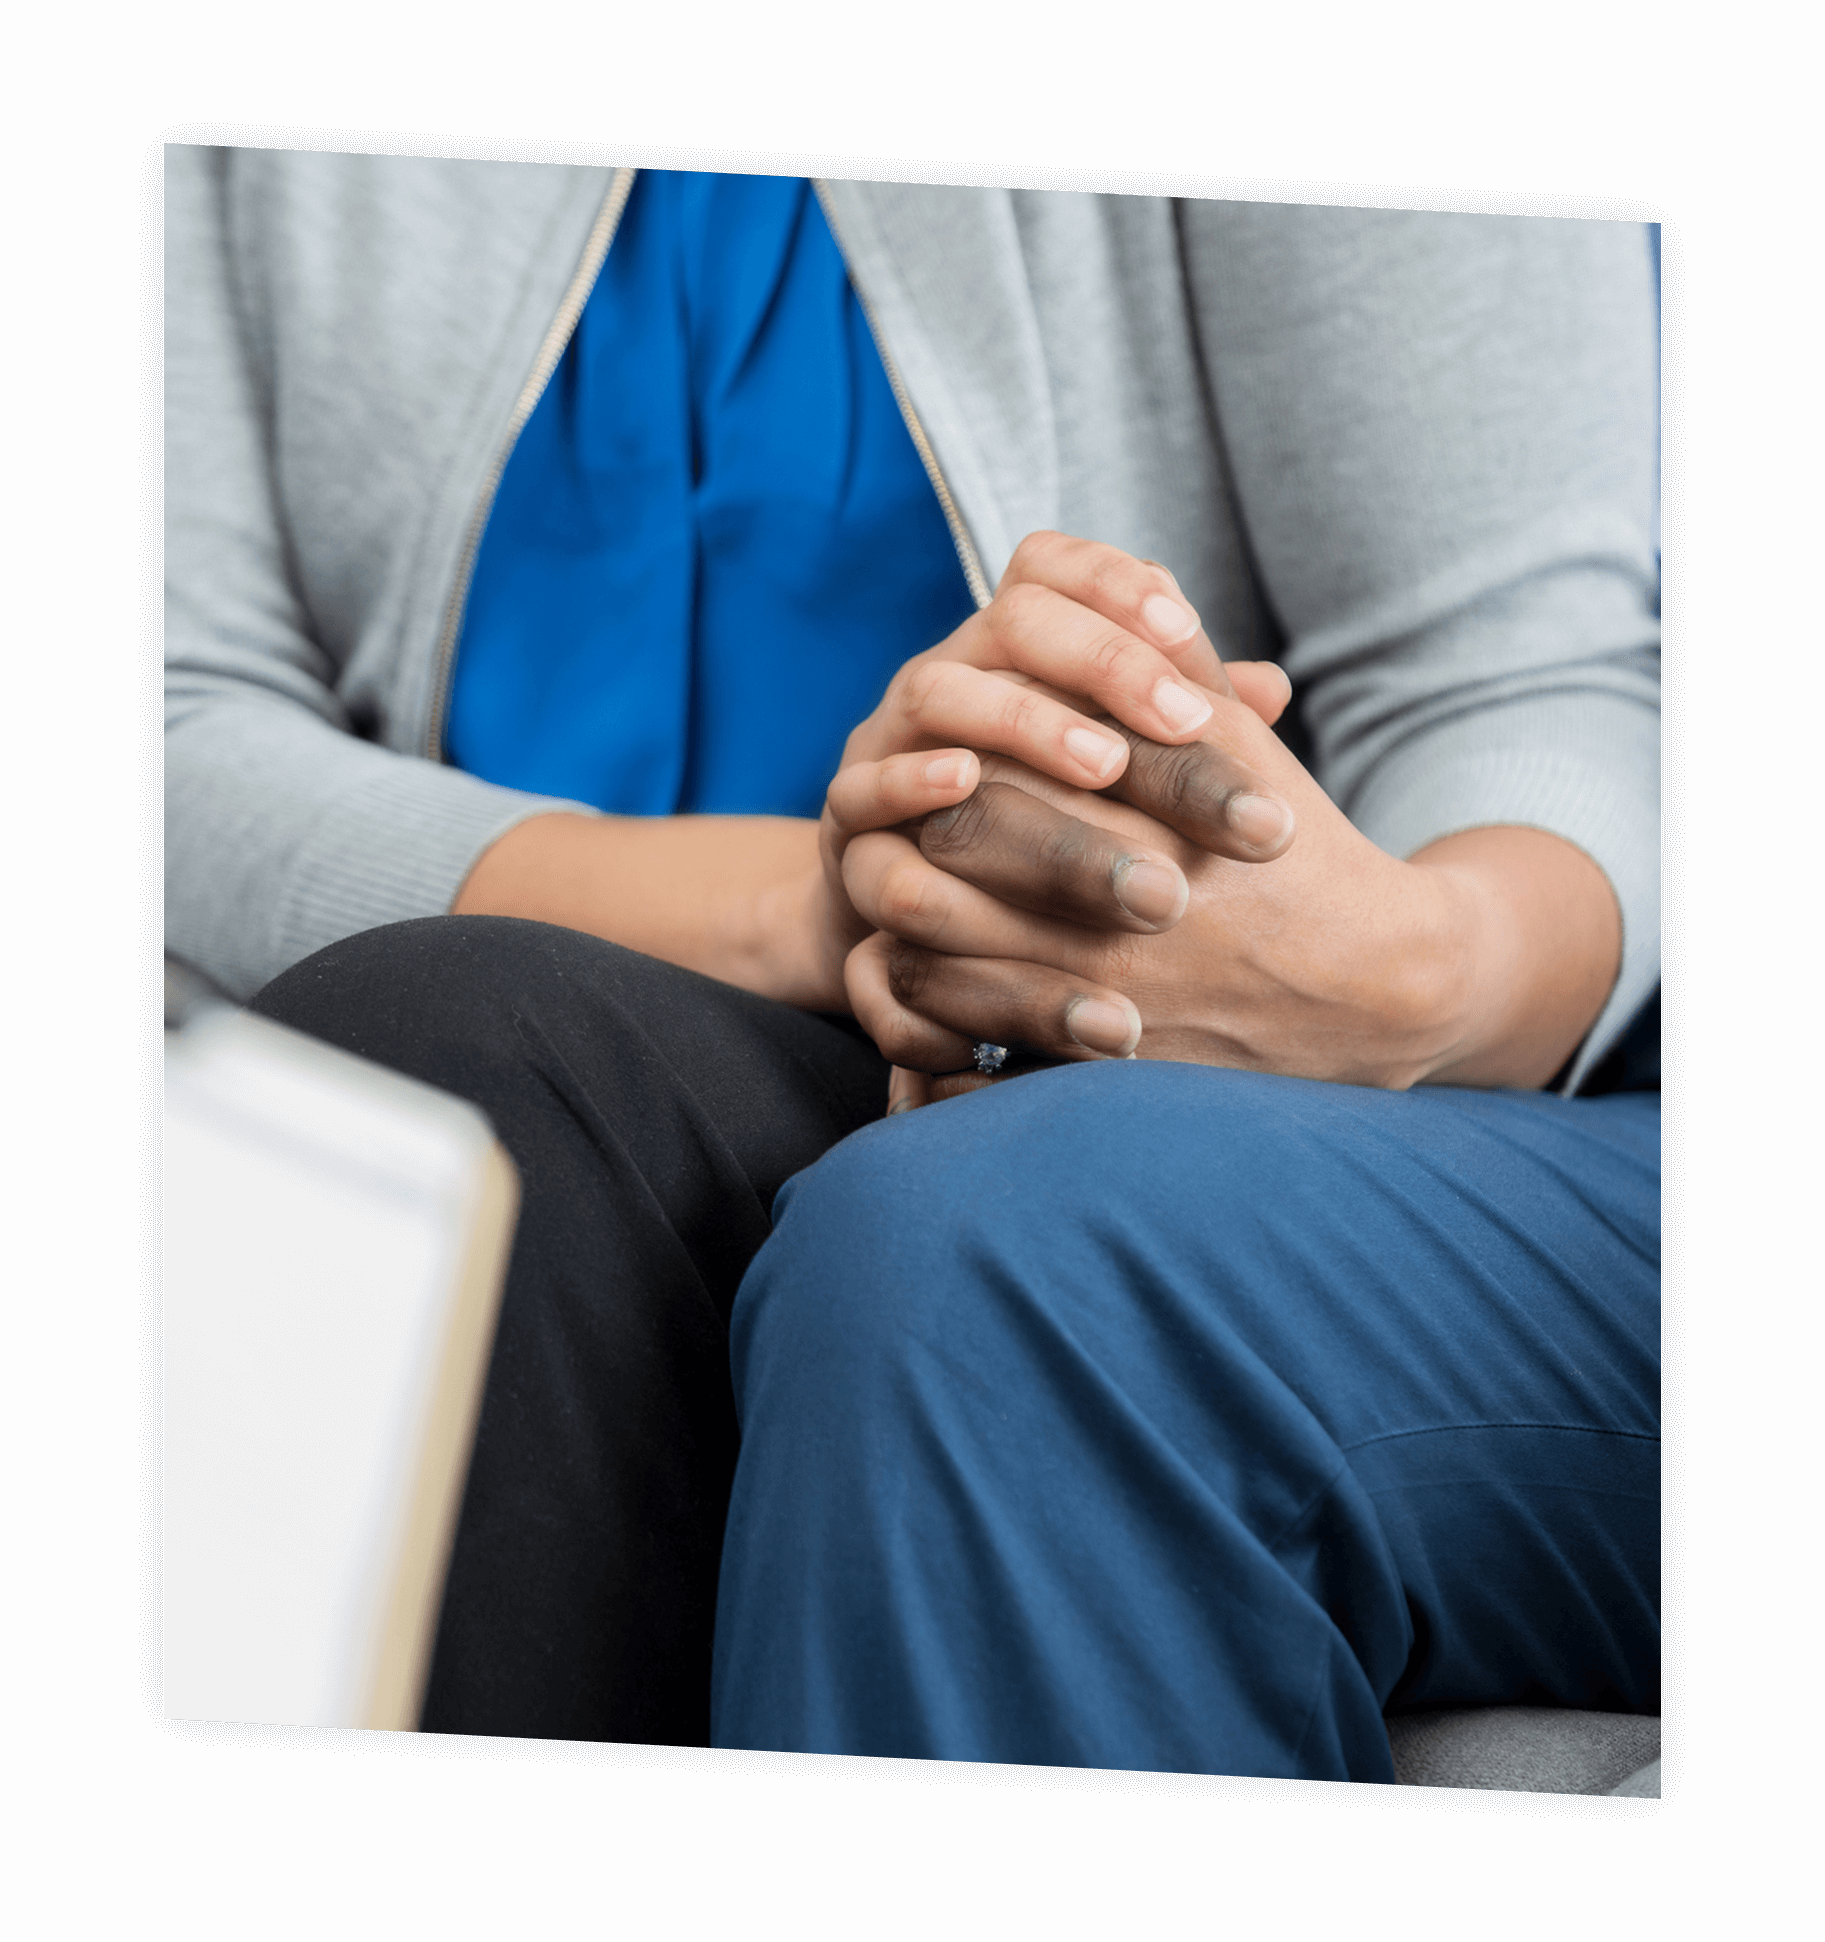 Lionheart Psychology - Couples counselling Calgary